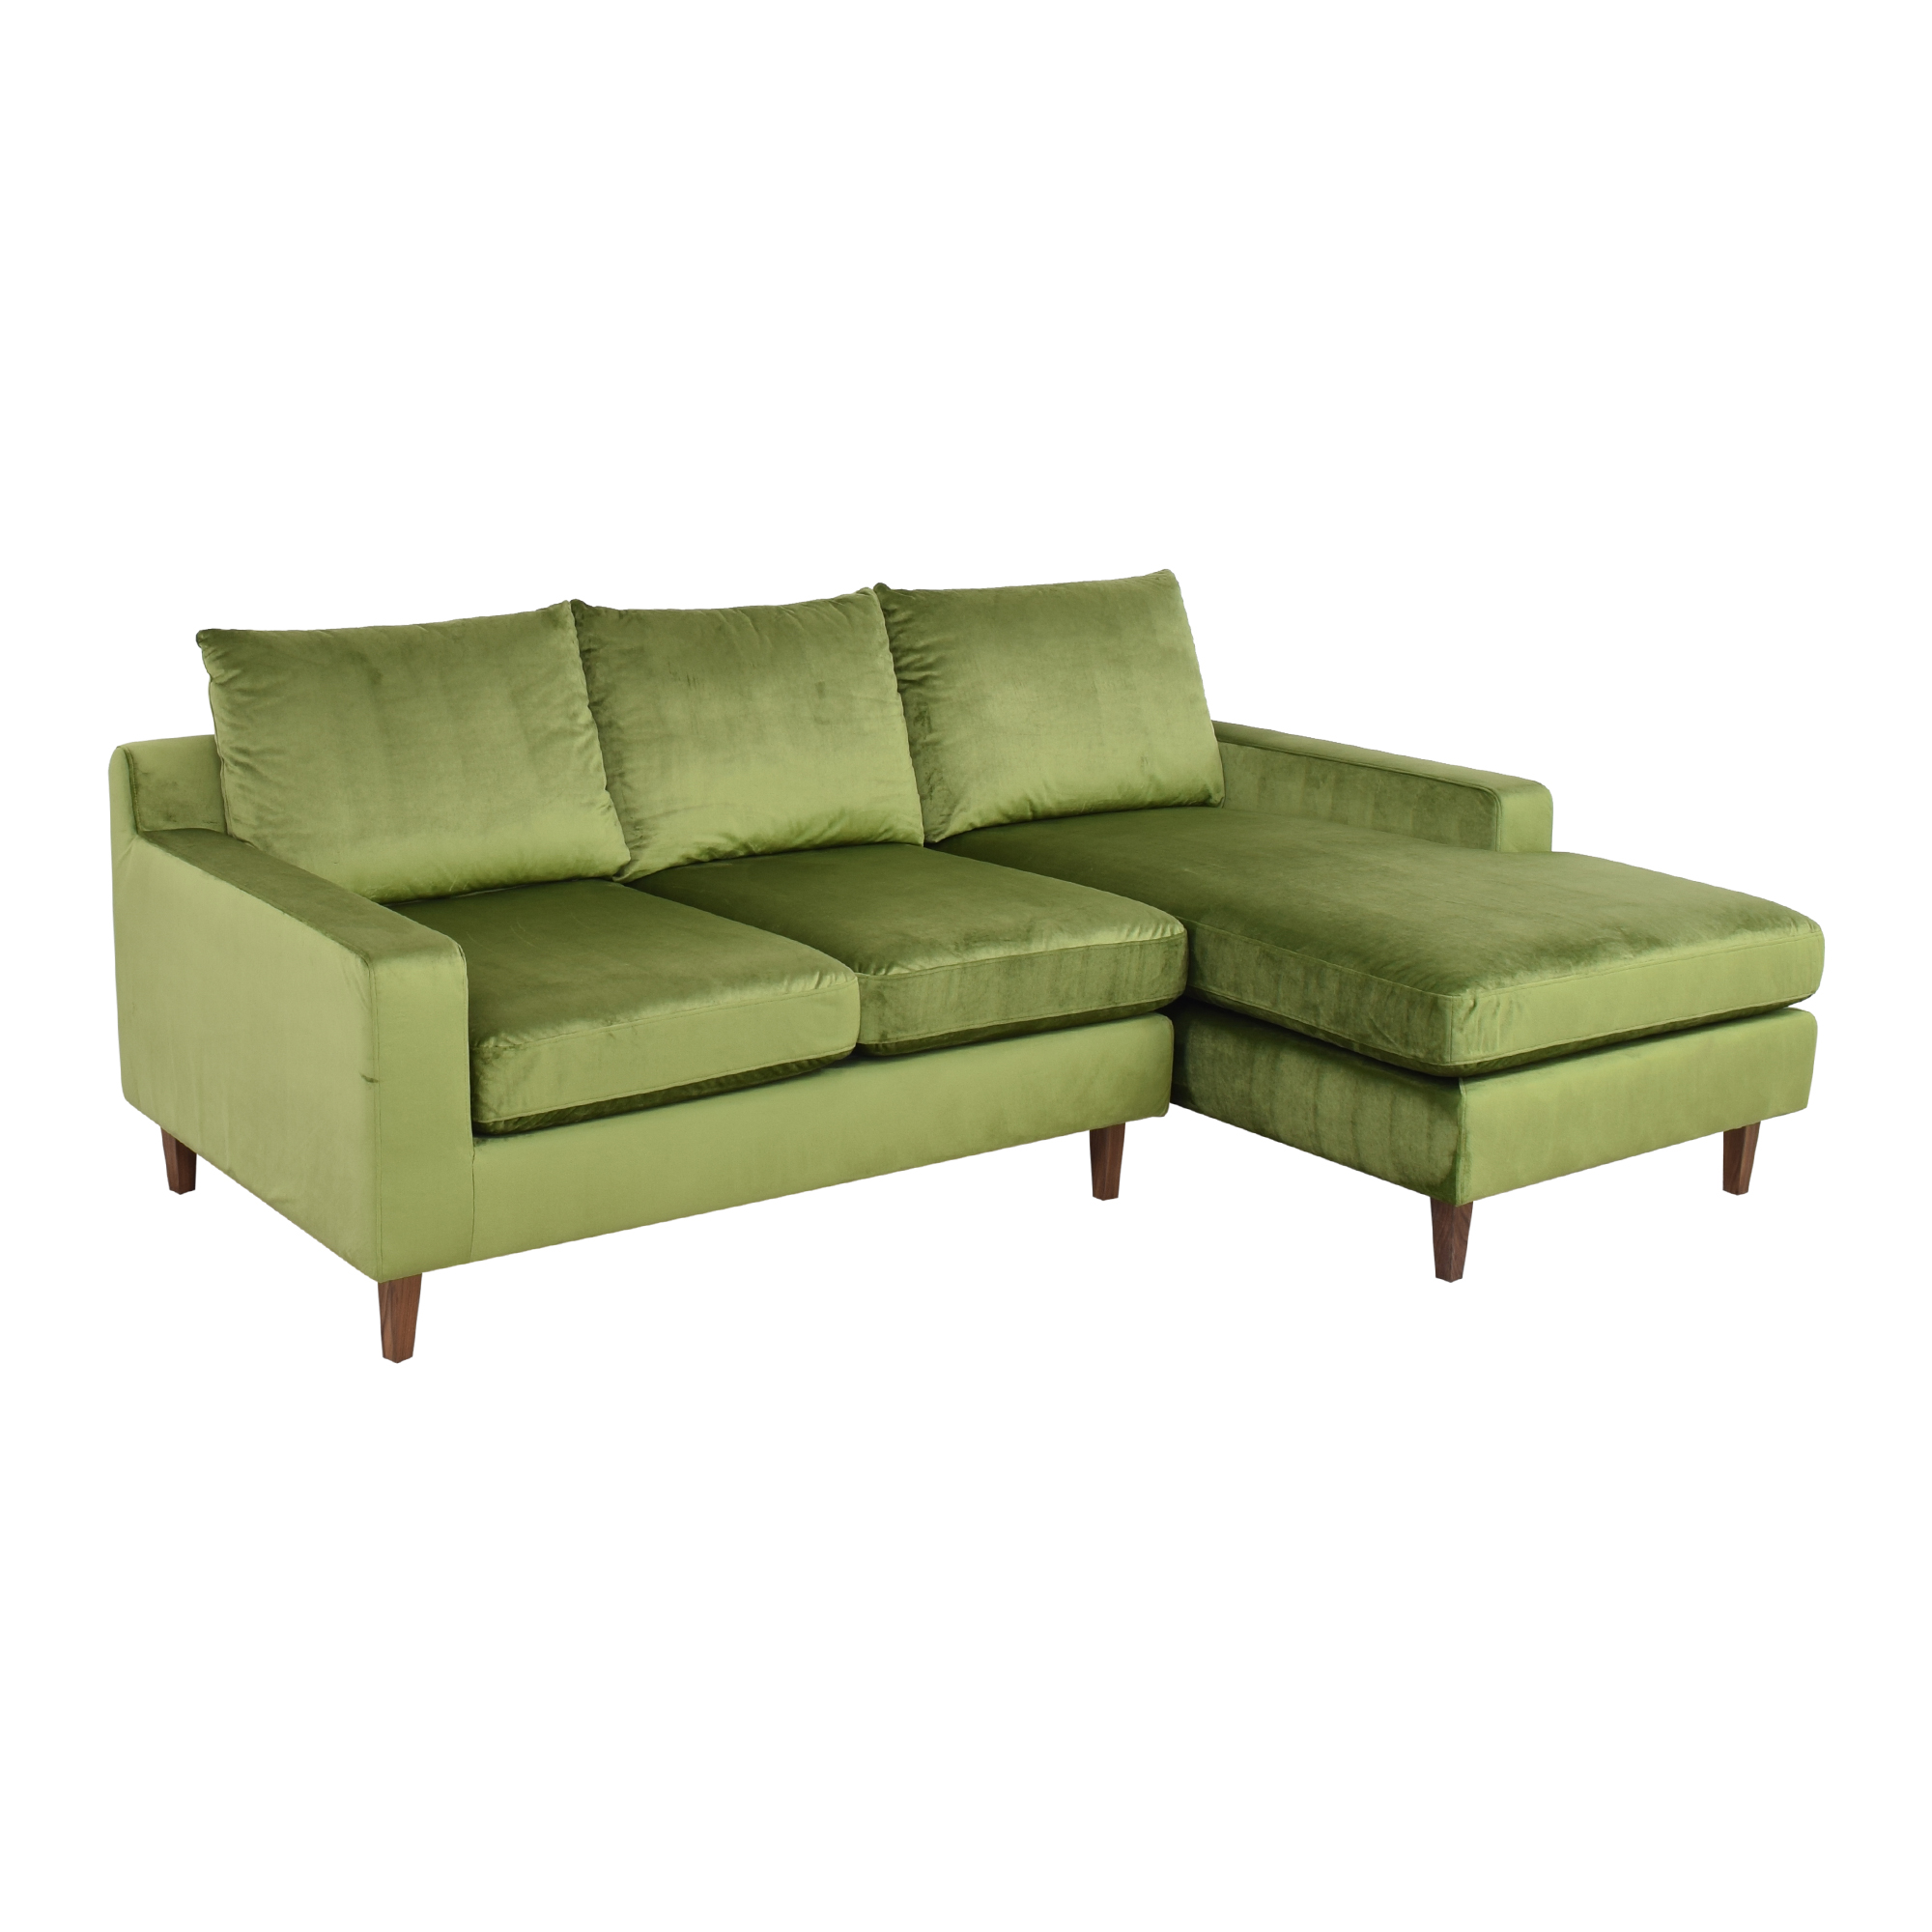 Interior Define Interior Define Sloan Sectional Sofa with Chaise green